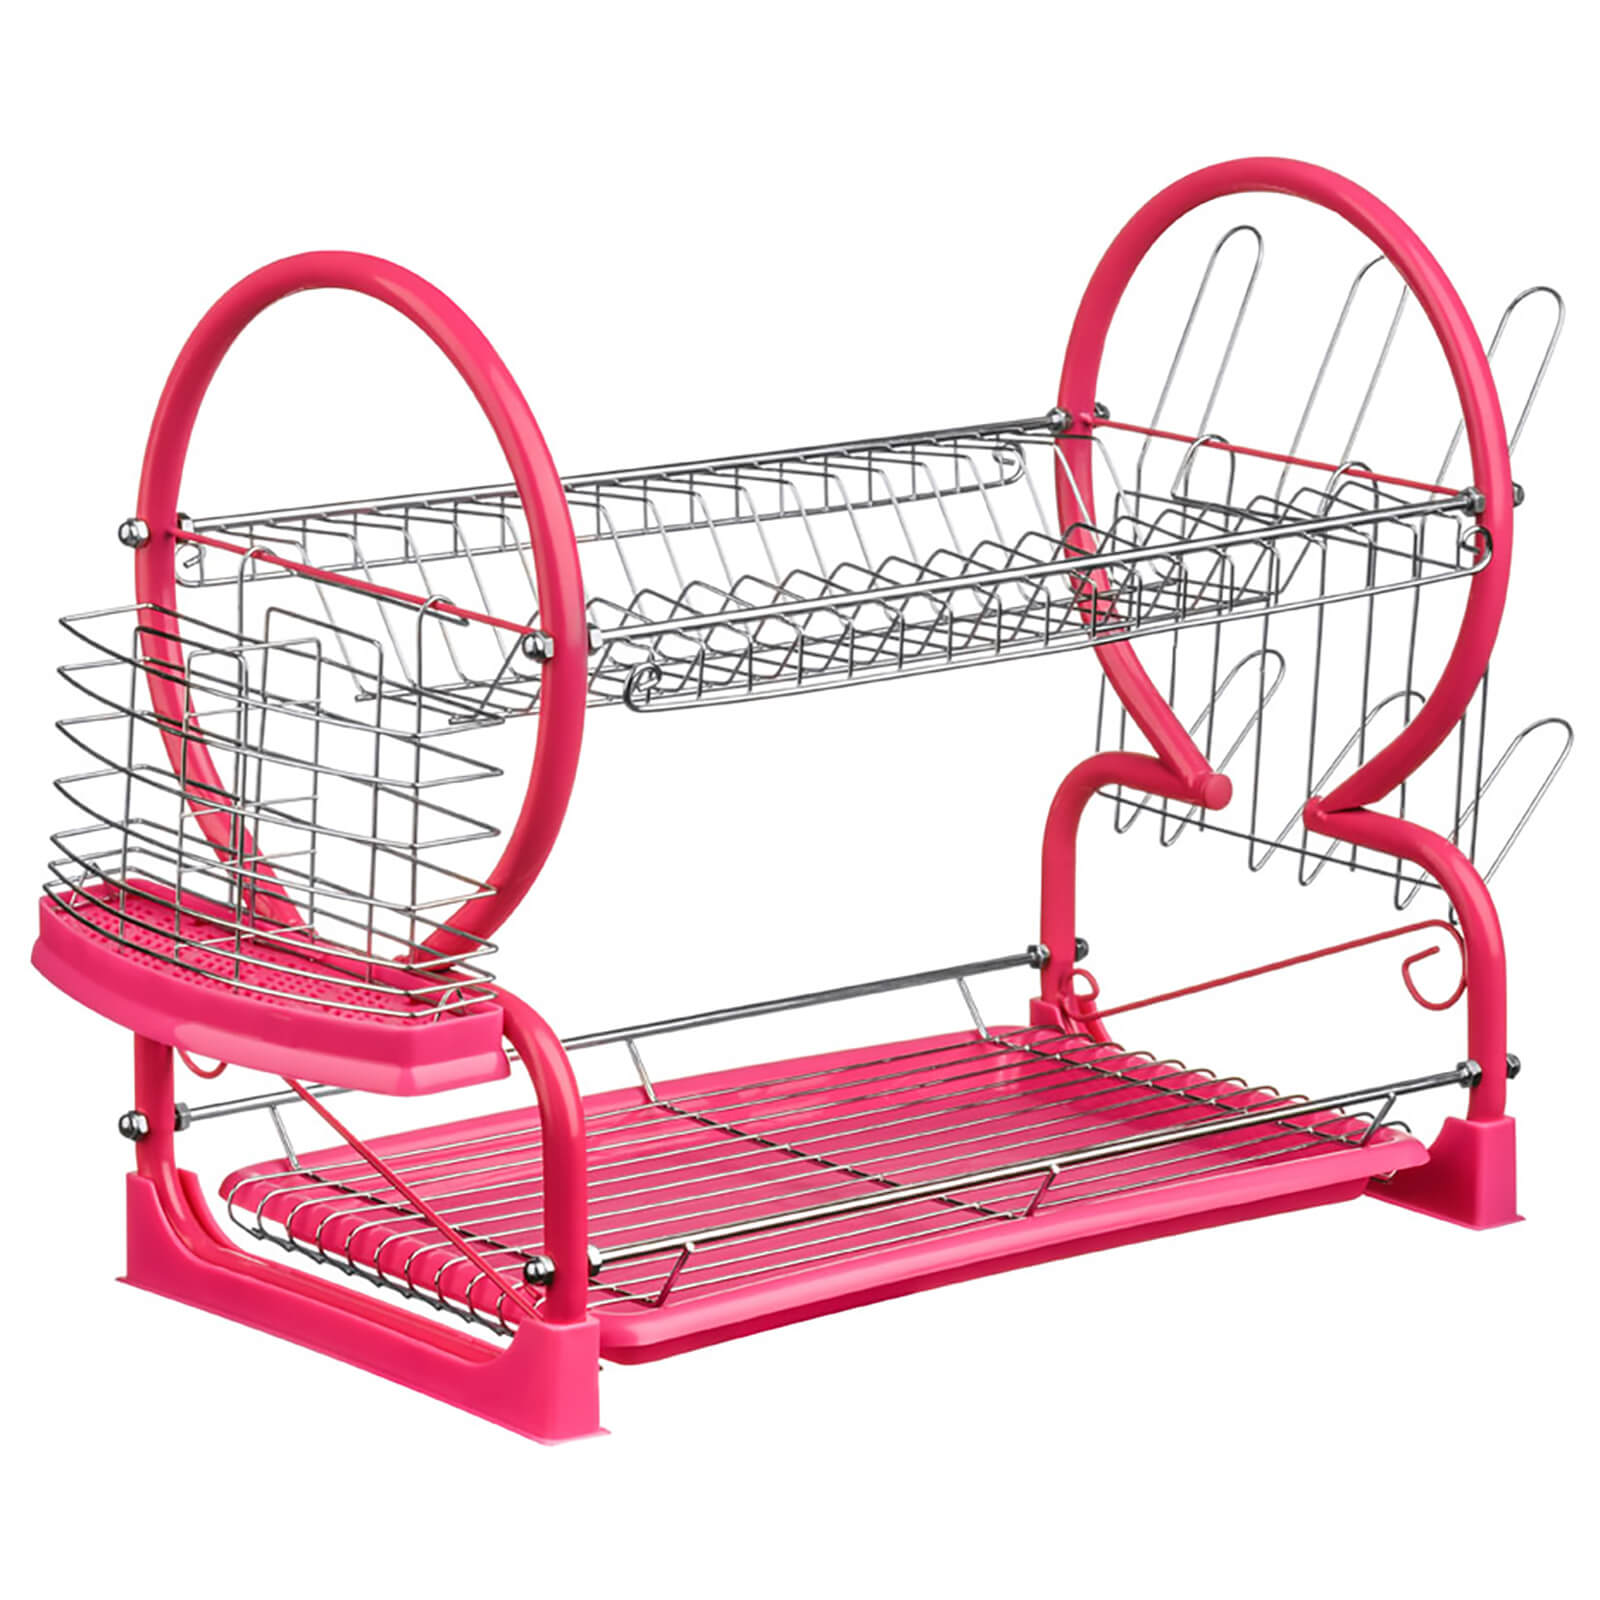 2 Tier Dish Drainer - Chrome/Hot Pink